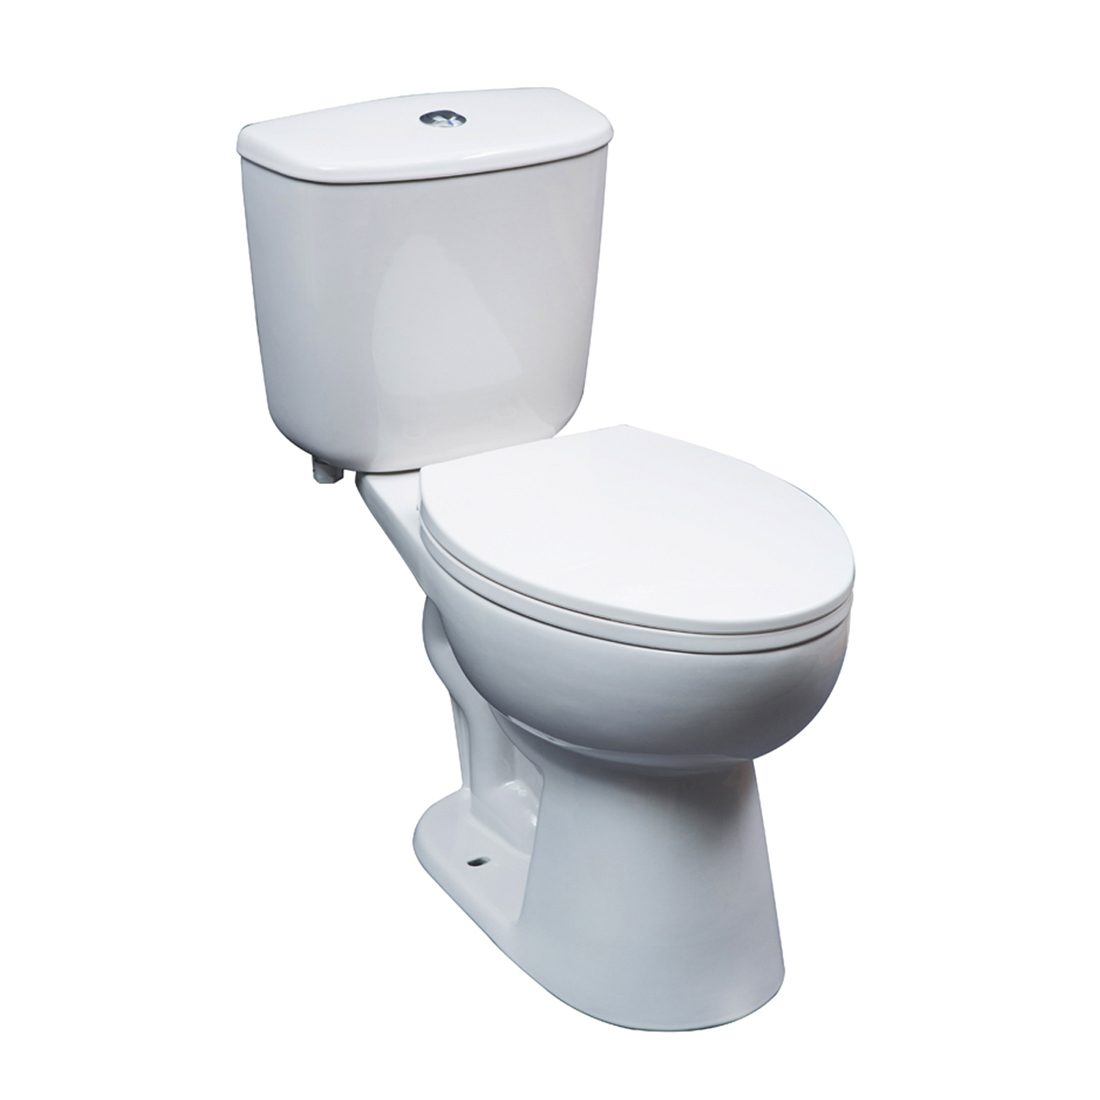 Seattle Toilet 16.5inch Dual White Front View